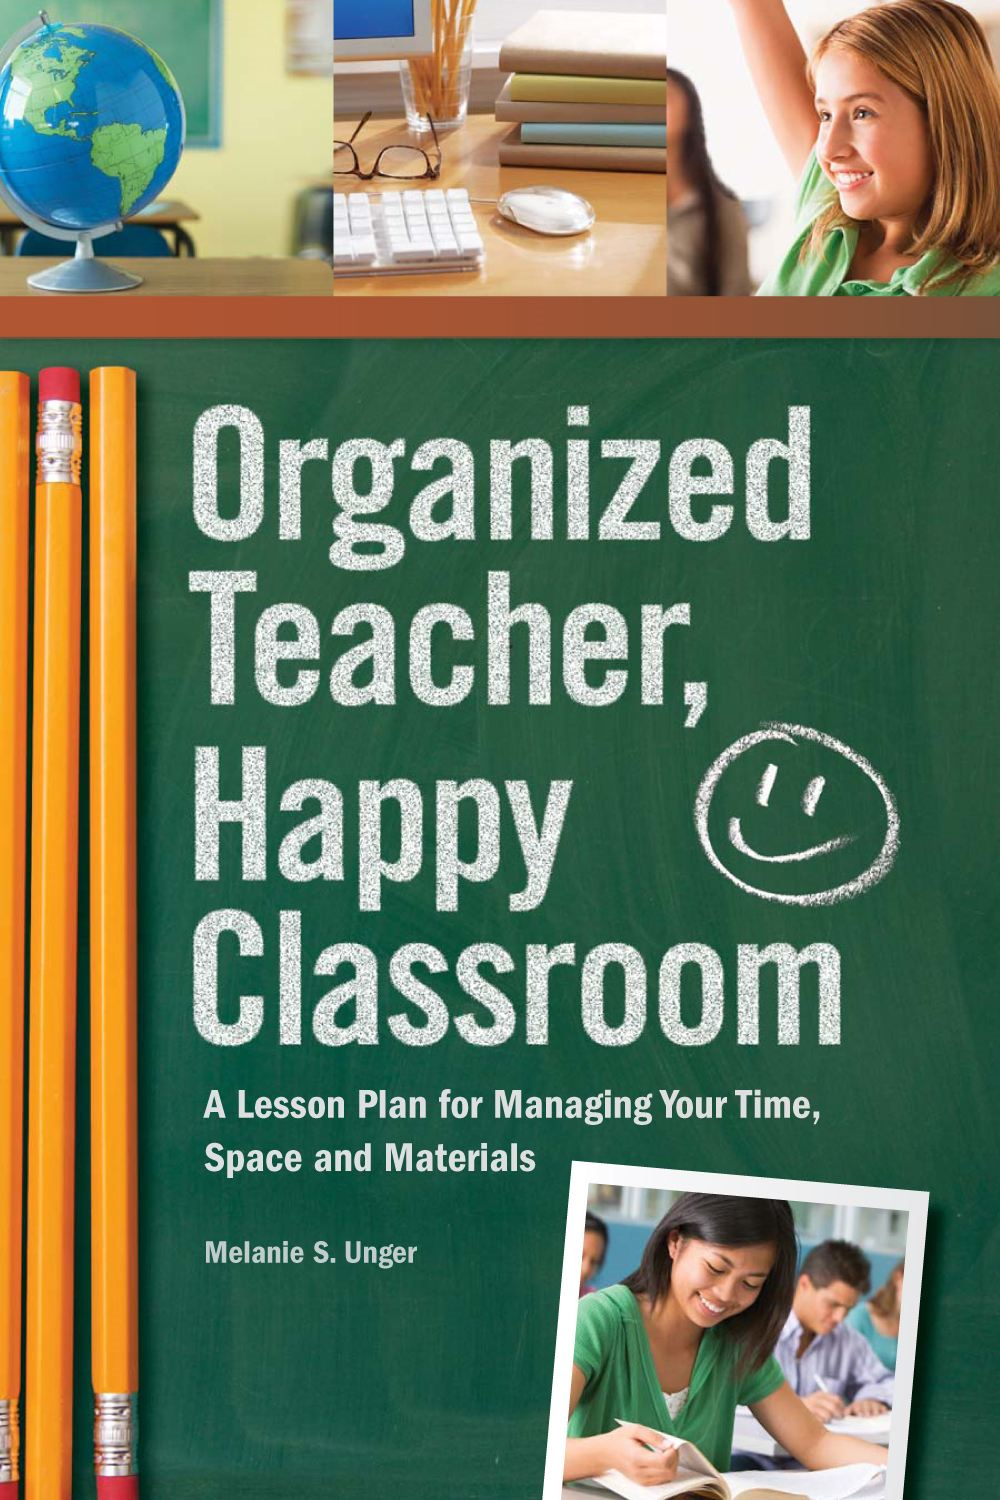 Organized Teacher, Happy Classroom: A Lesson Plan for Managing Your Time, Space and Materials By: Melanie S. Unger